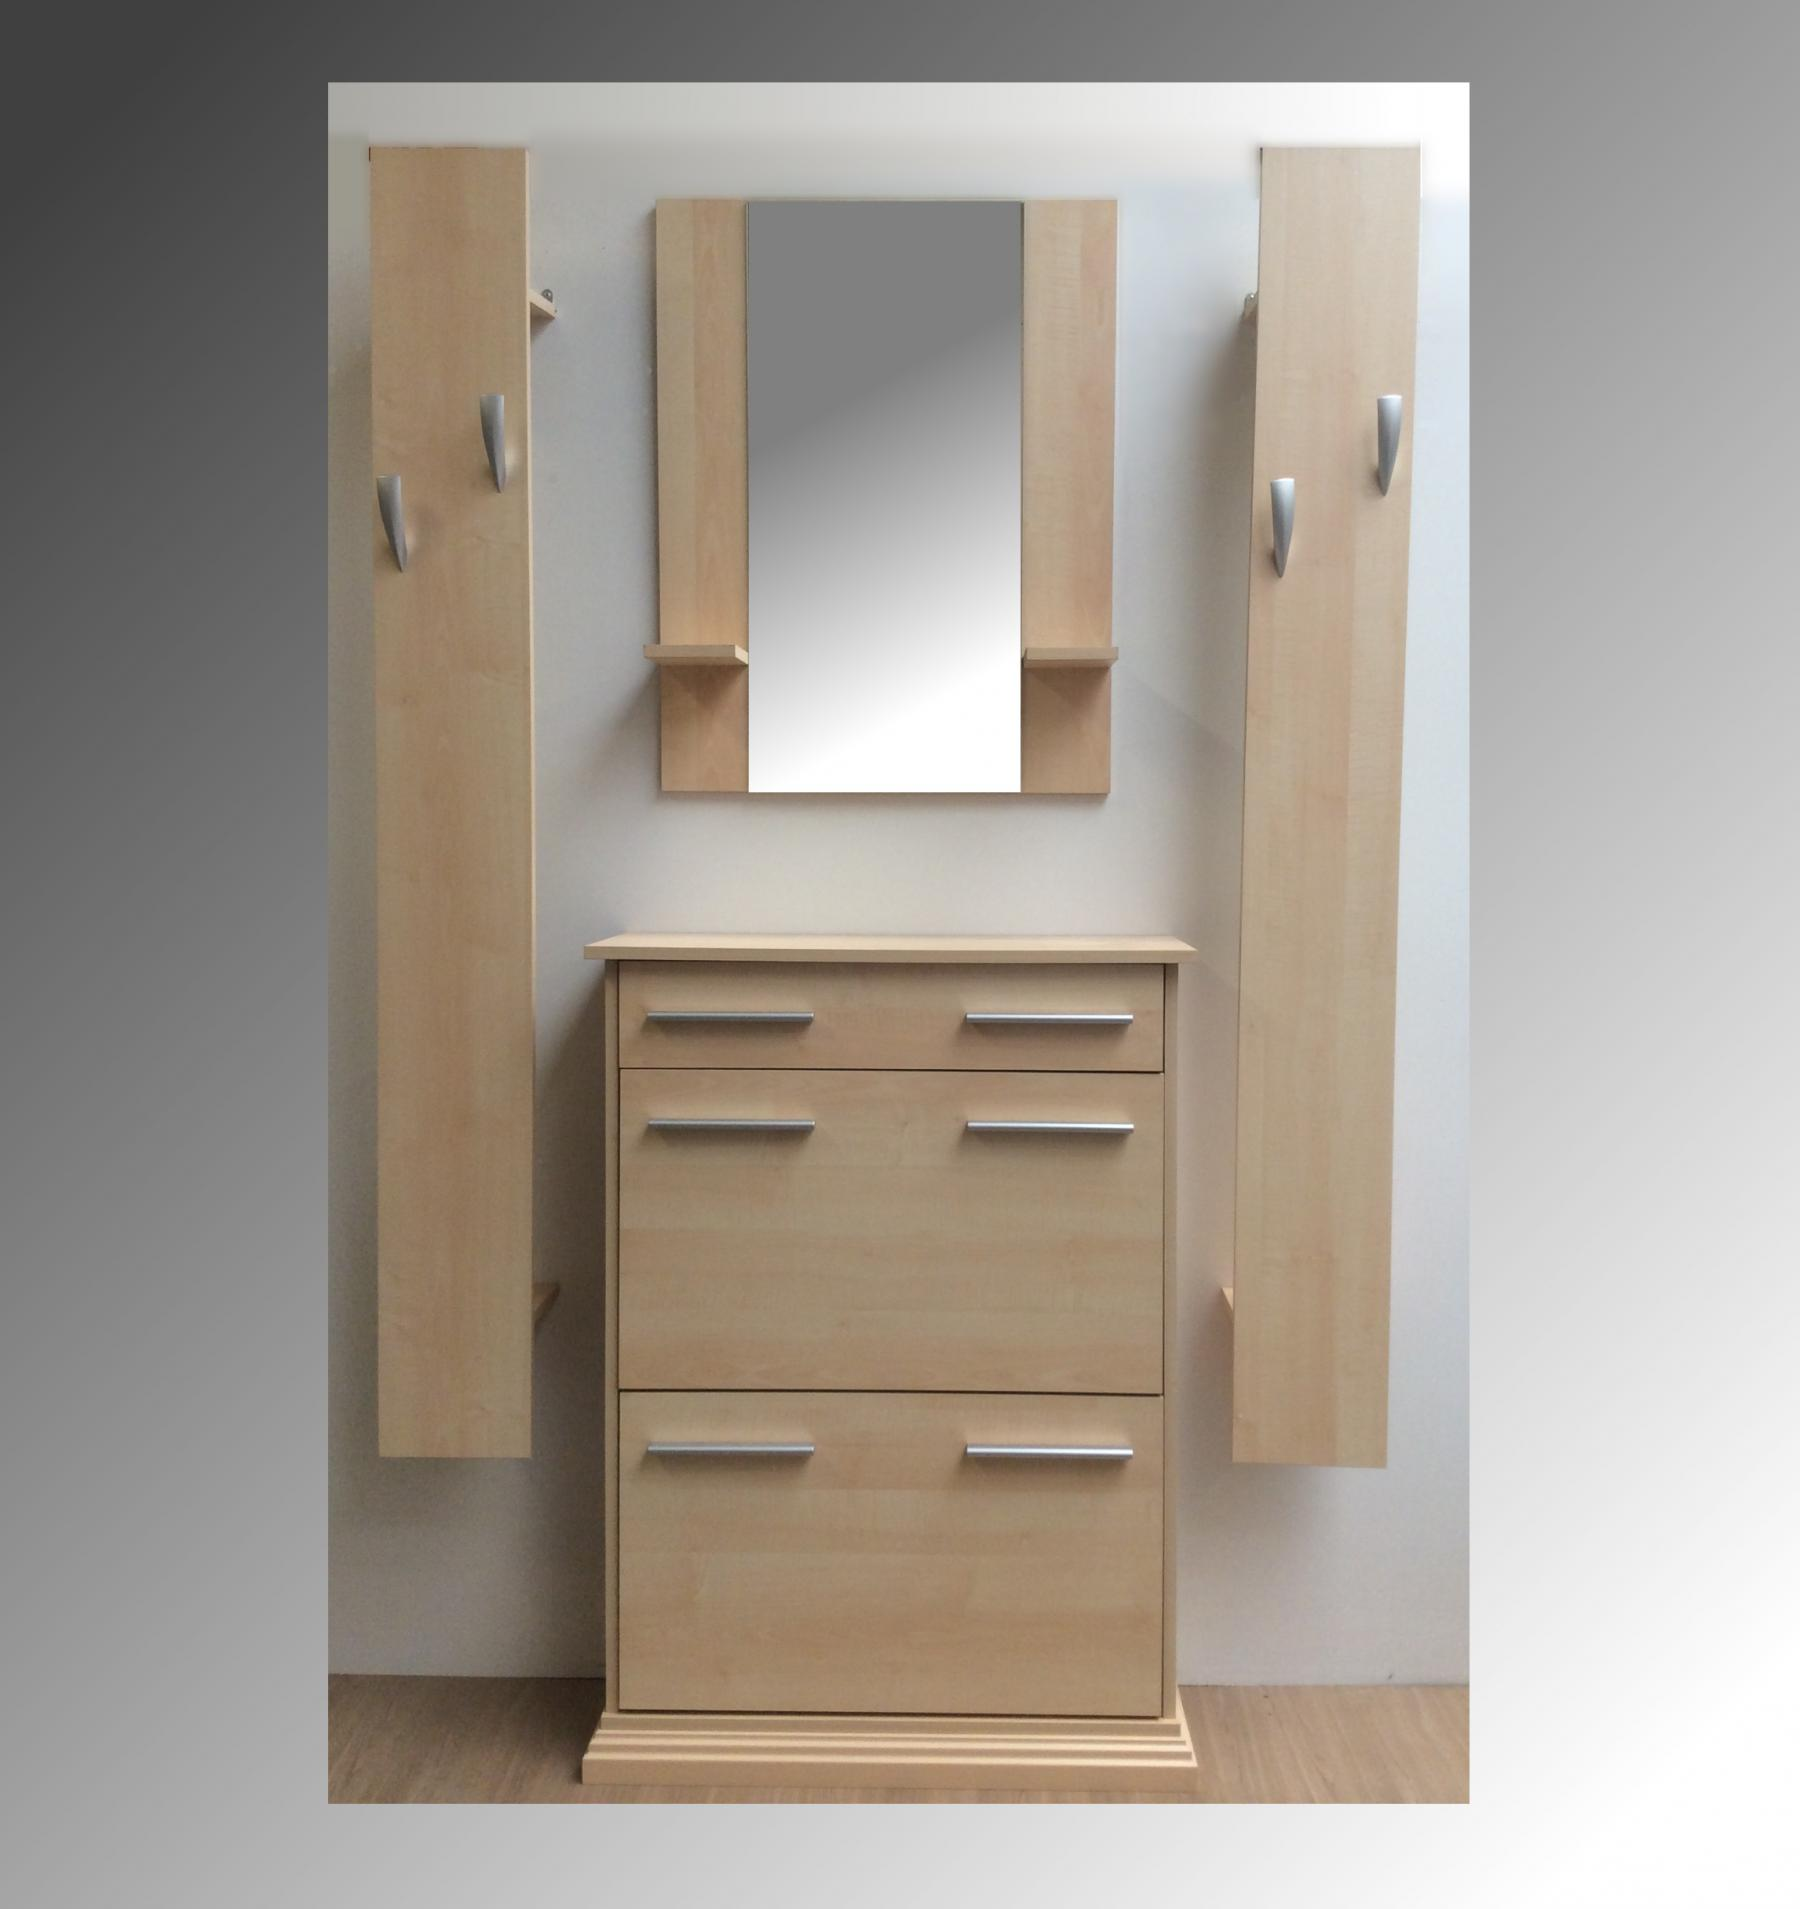 garderobenset flur garderobe dielenm bel ahorn. Black Bedroom Furniture Sets. Home Design Ideas